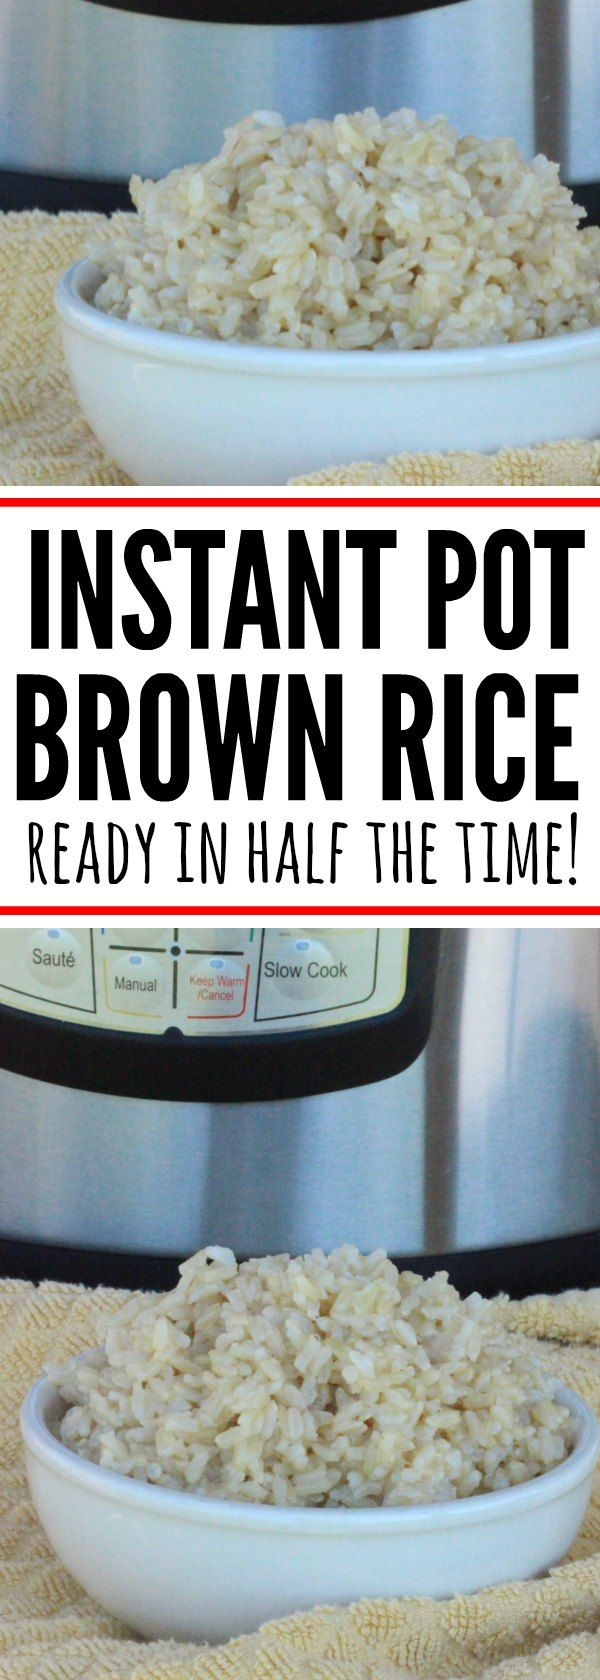 Looking for instant pot recipes? Try this brown rice pressure cooker recipe. Pressure cooker brown rice is ready in half the time of traditional cooking!